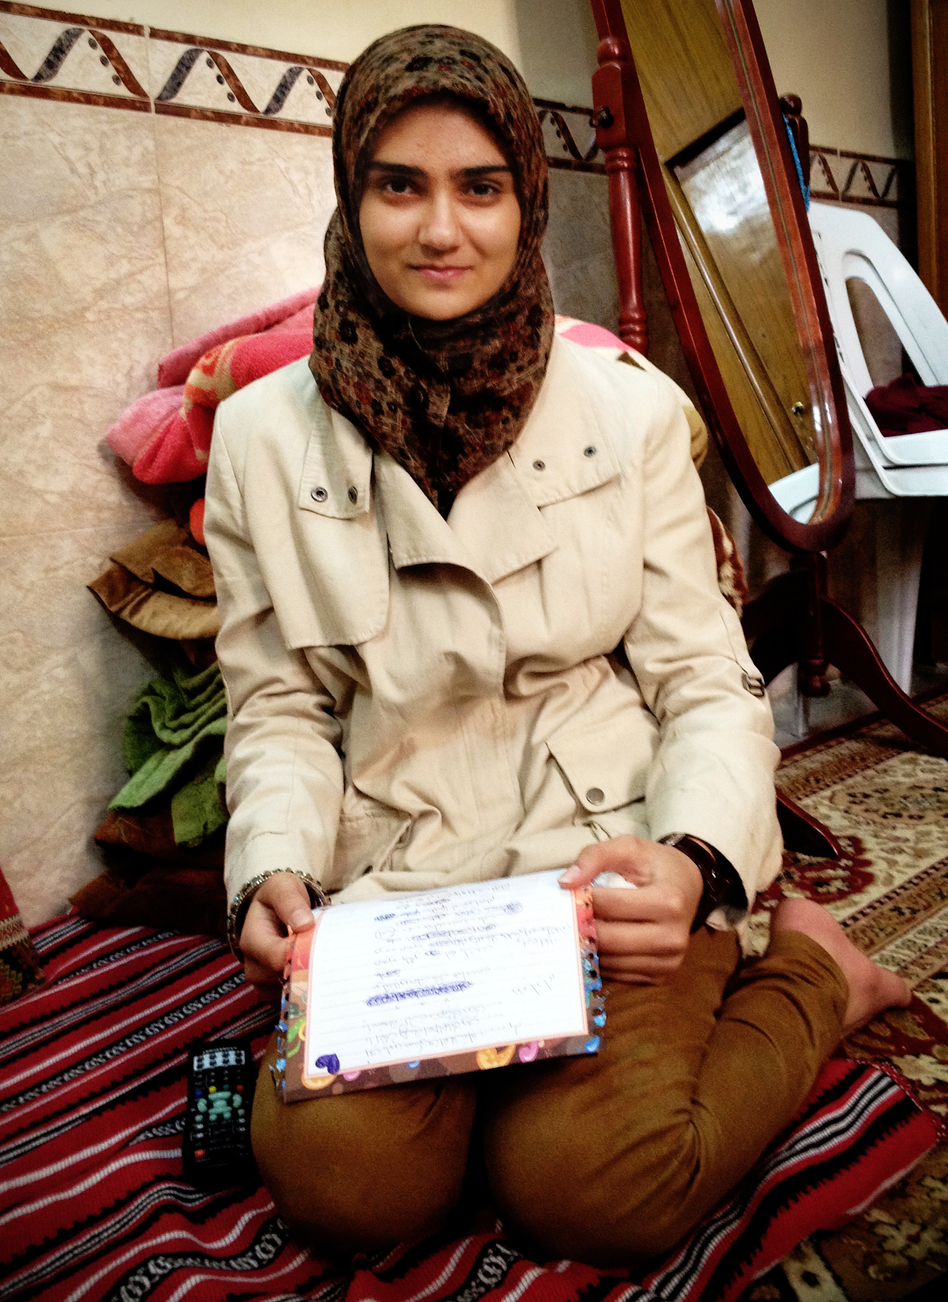 Guffran, 16, sits on the floor of her home, holding a letter she wrote to her father. A Shiite Muslim, Guffran's father was gunned down on the streets of Baghdad in 2006.